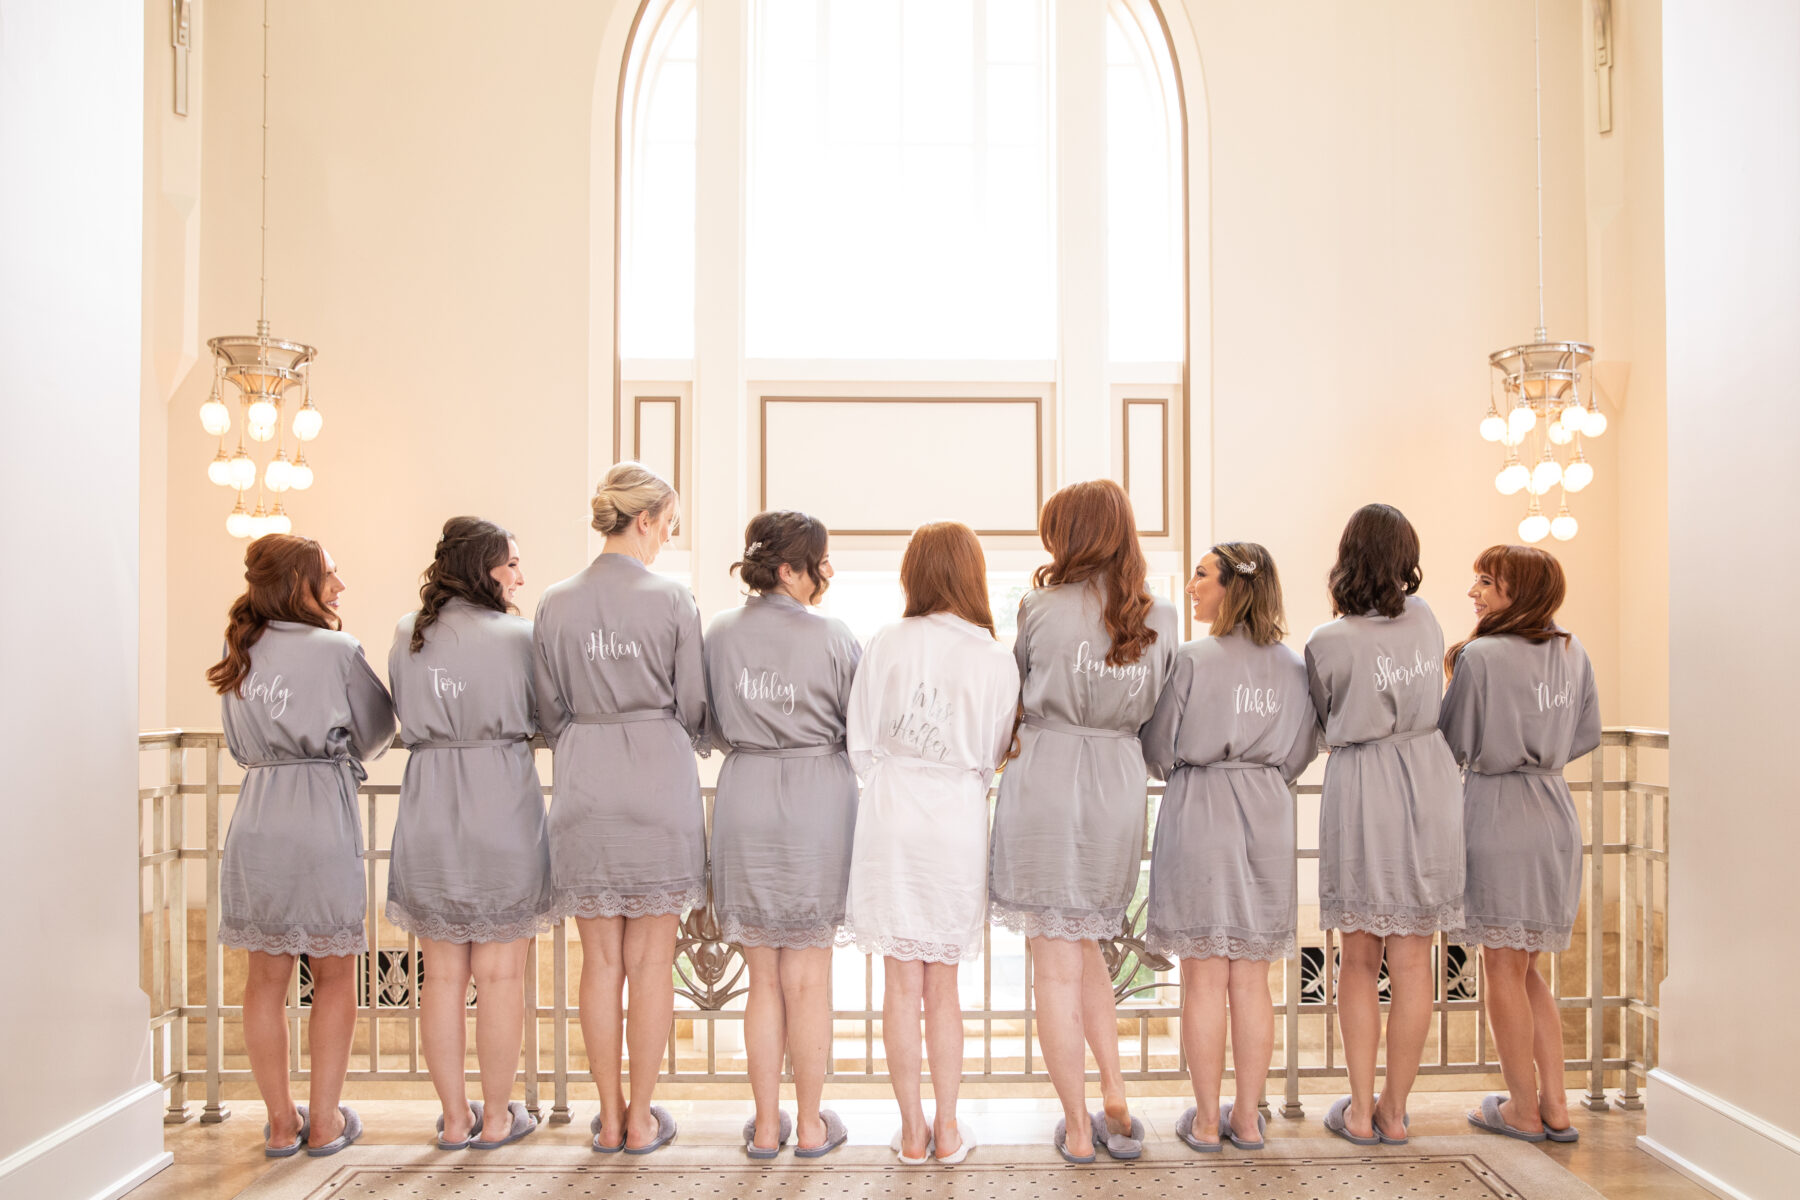 Bridal party robes: Floral Filled Luxurious Wedding by LMA Designs featured on Nashville Bride Guide